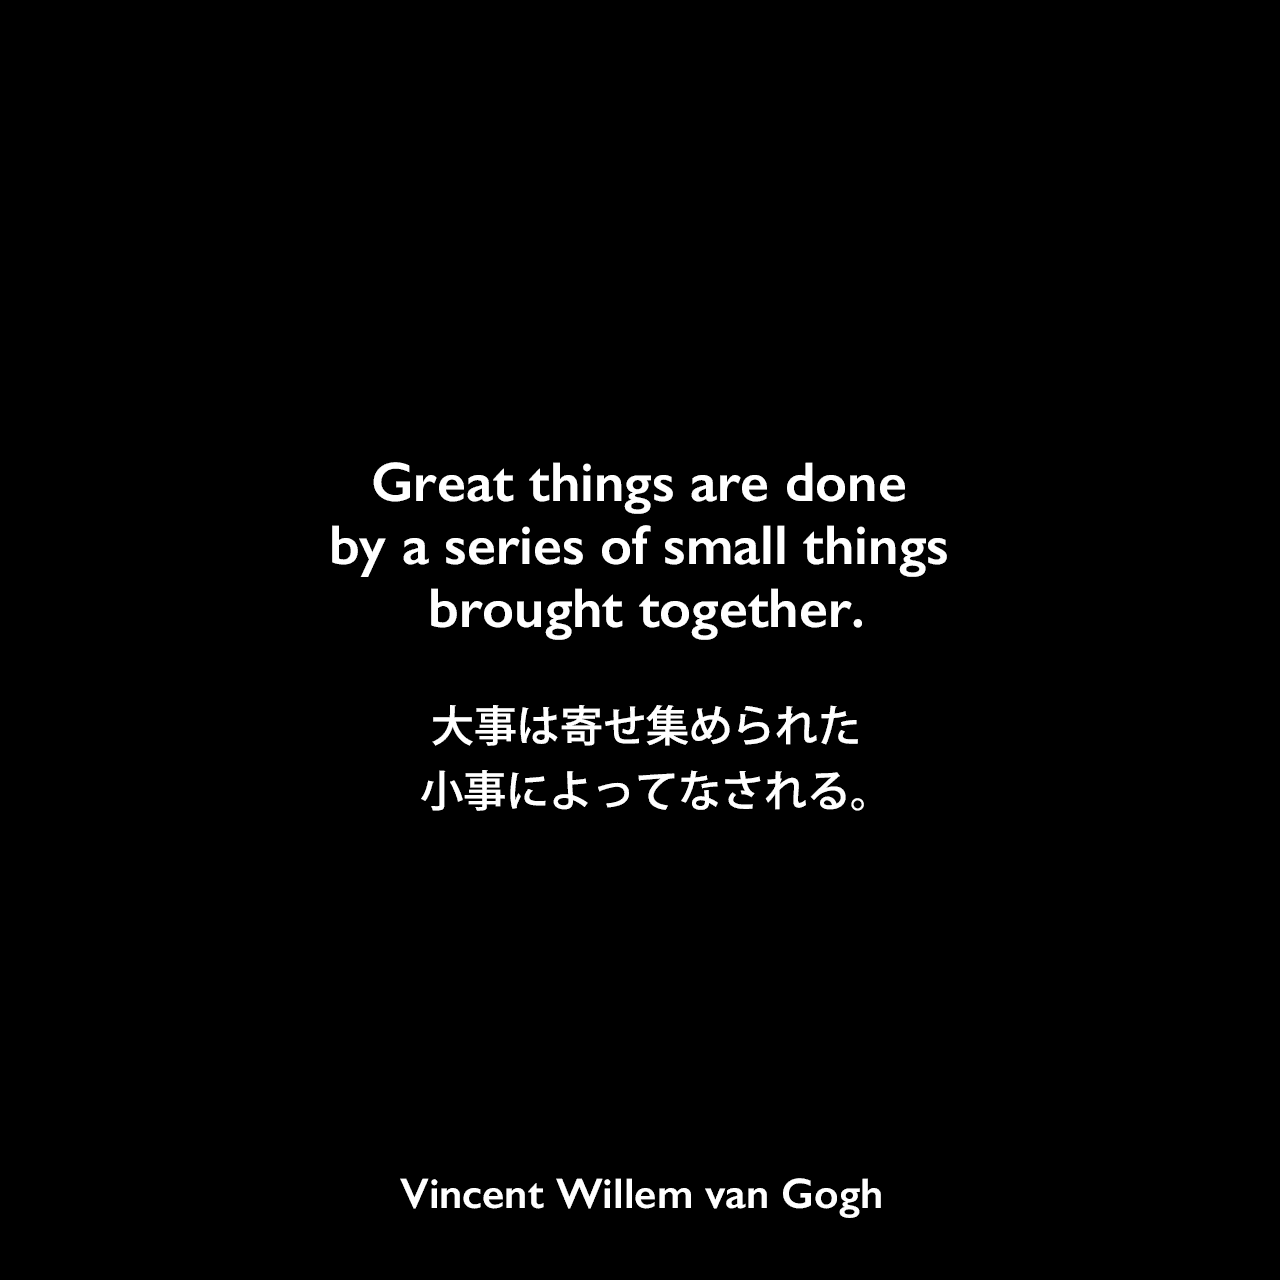 Great things are done by a series of small things brought together.大事は寄せ集められた小事によってなされる。- ゴッホの弟テオへ宛てた手紙よりVincent Willem van Gogh